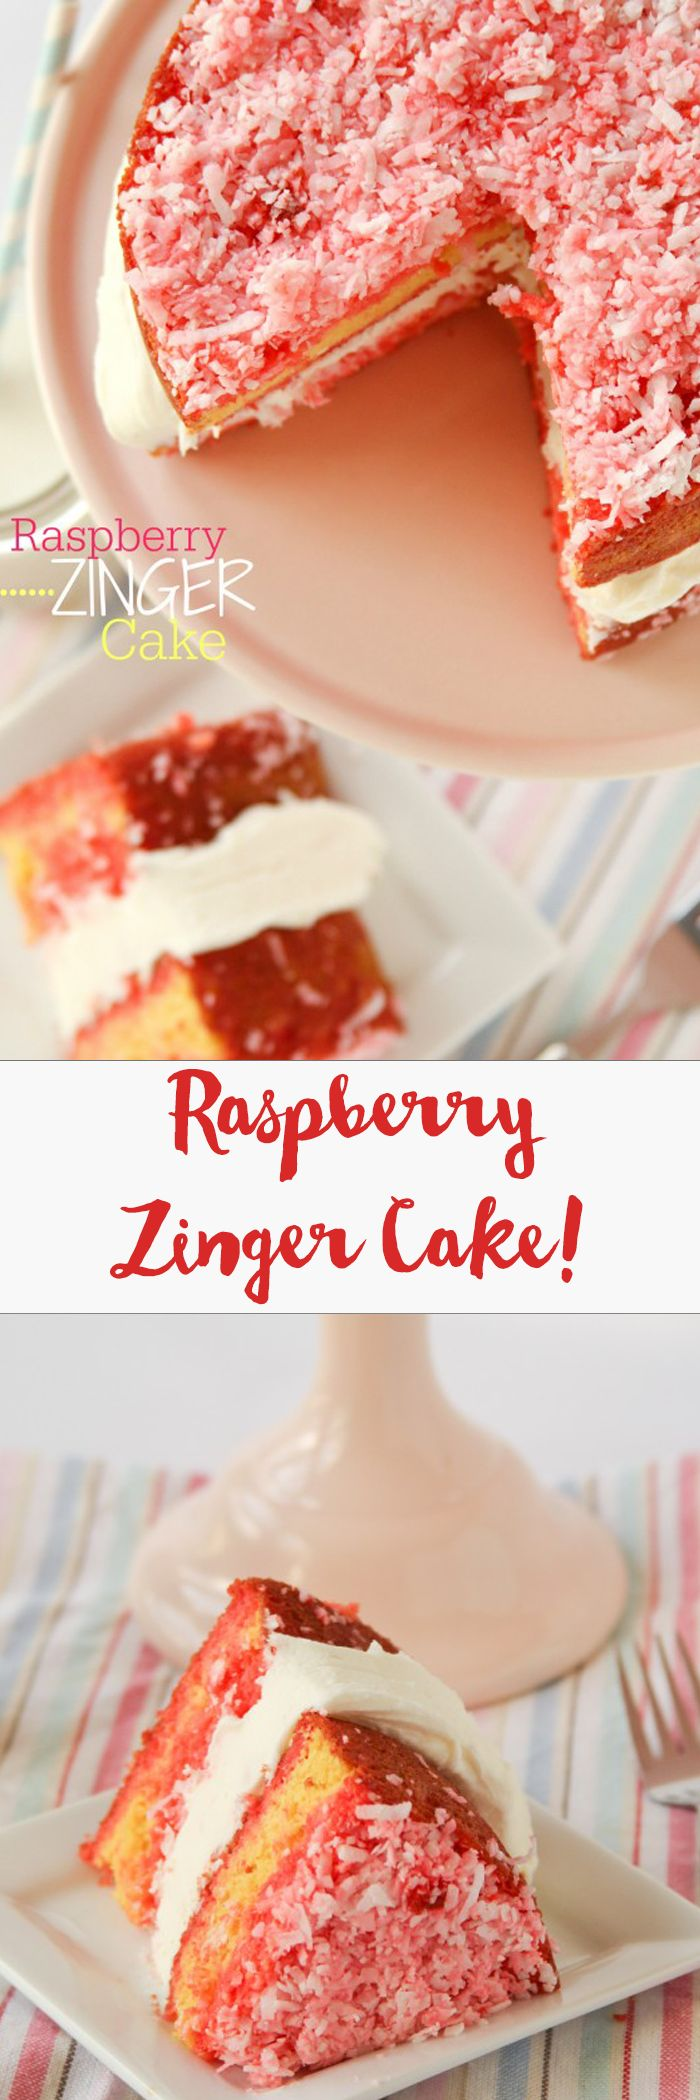 Raspberry Zinger Layer Cake -- just like eating a giant raspberry zinger! This always gets rave reviews from anyone who makes it! One of my most popular recipes of all time!